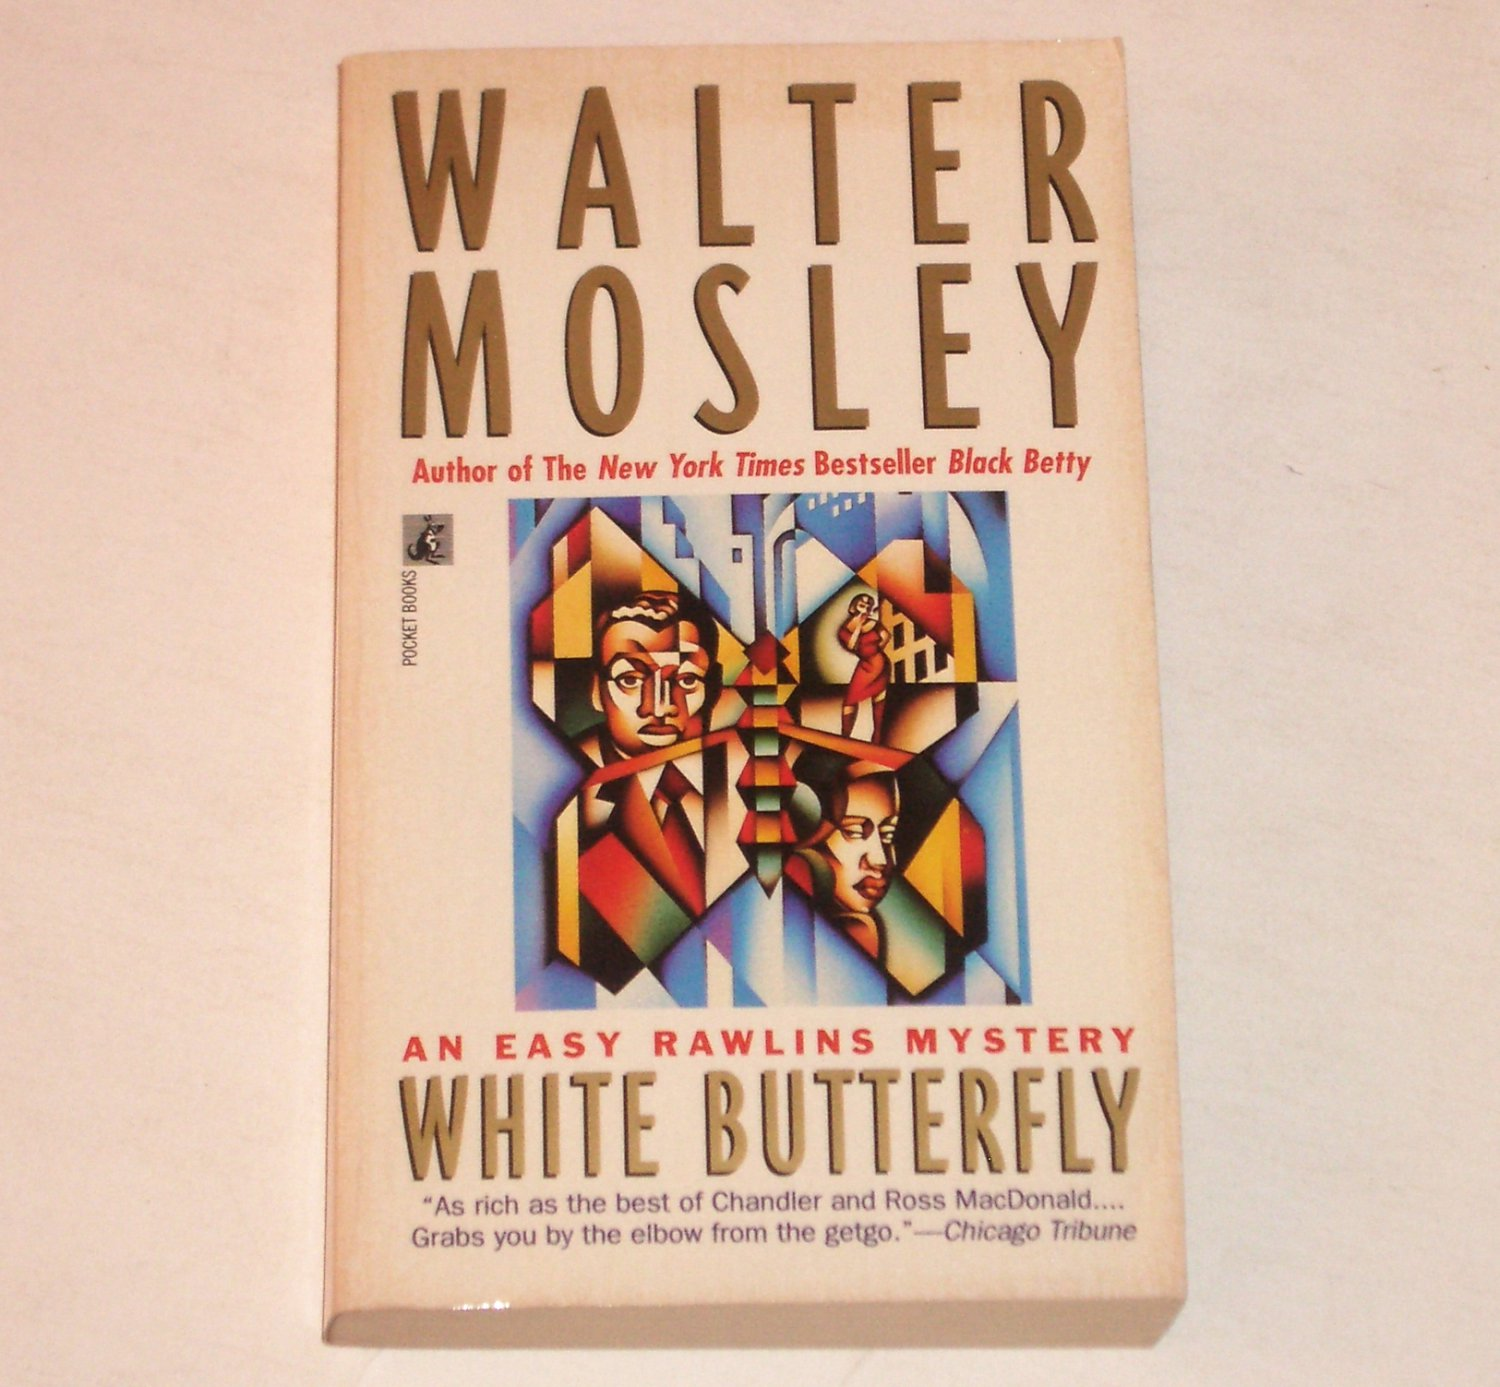 White Butterfly by WALTER MOSLEY An Easy Rawlins Mystery 1993